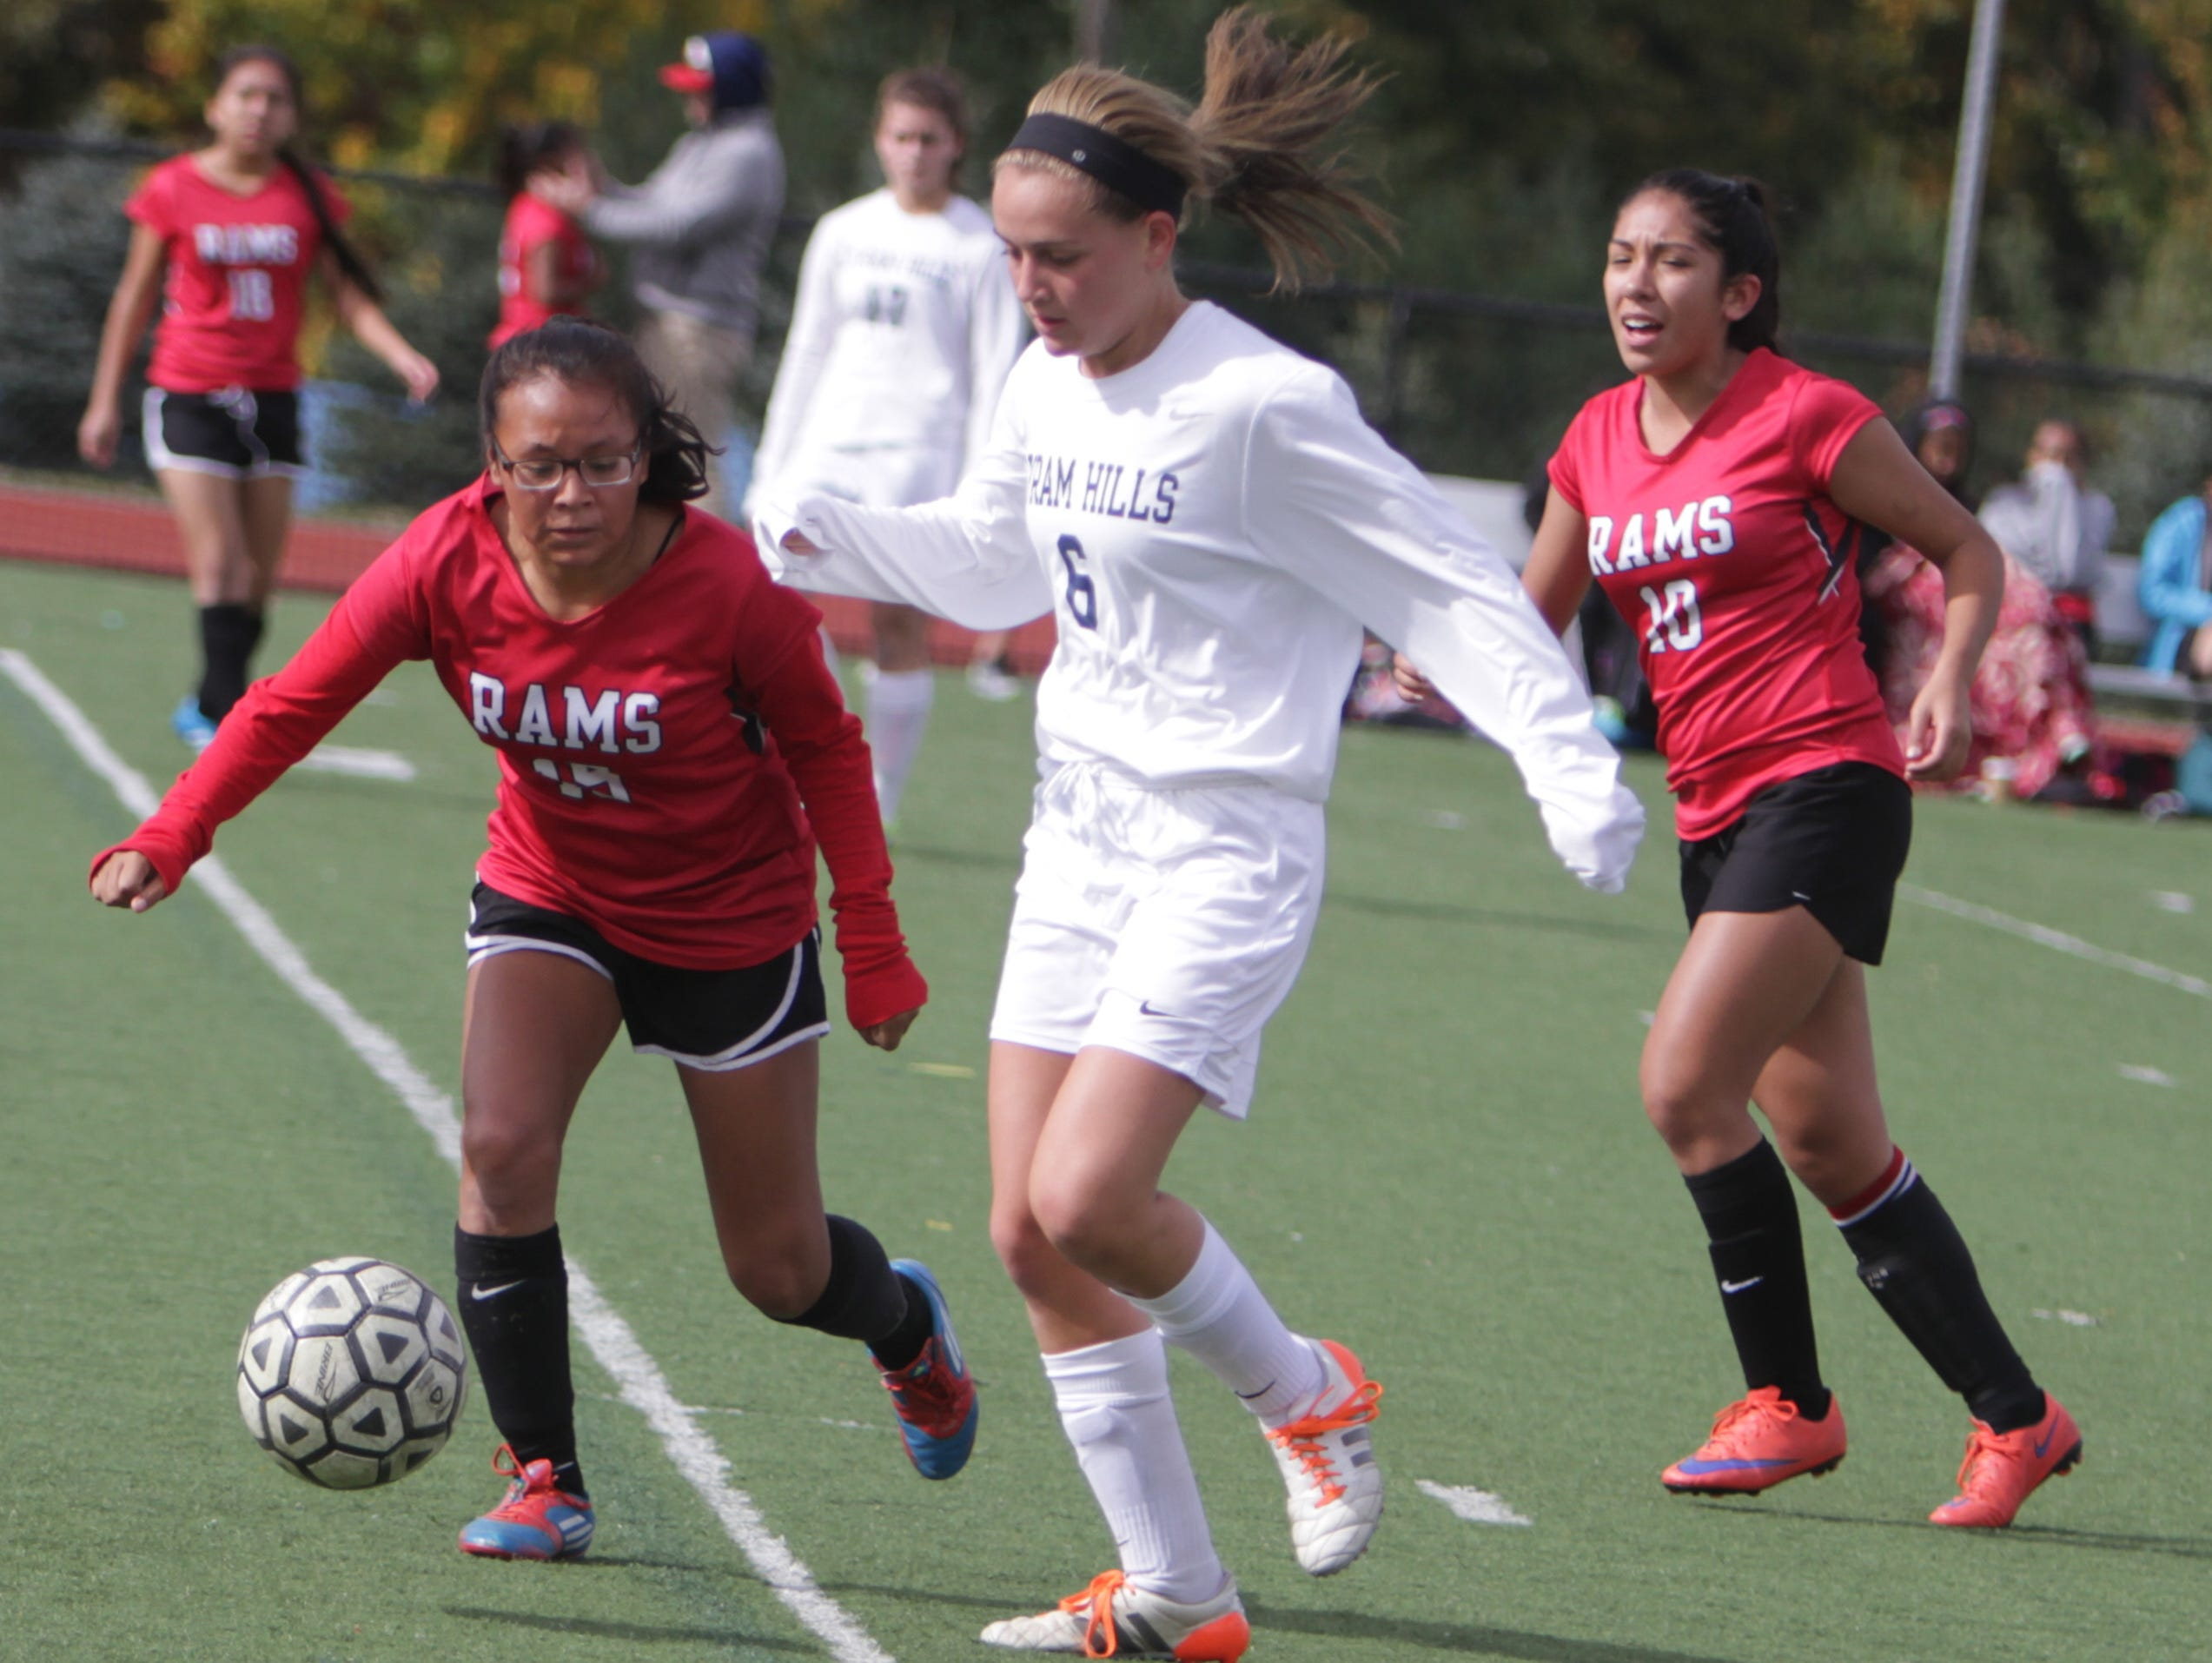 Byram Hills defeated Riverside 6-0 in a Section 1, Class A first round game at Byram Hills High School on Saturday, October 24th, 2015